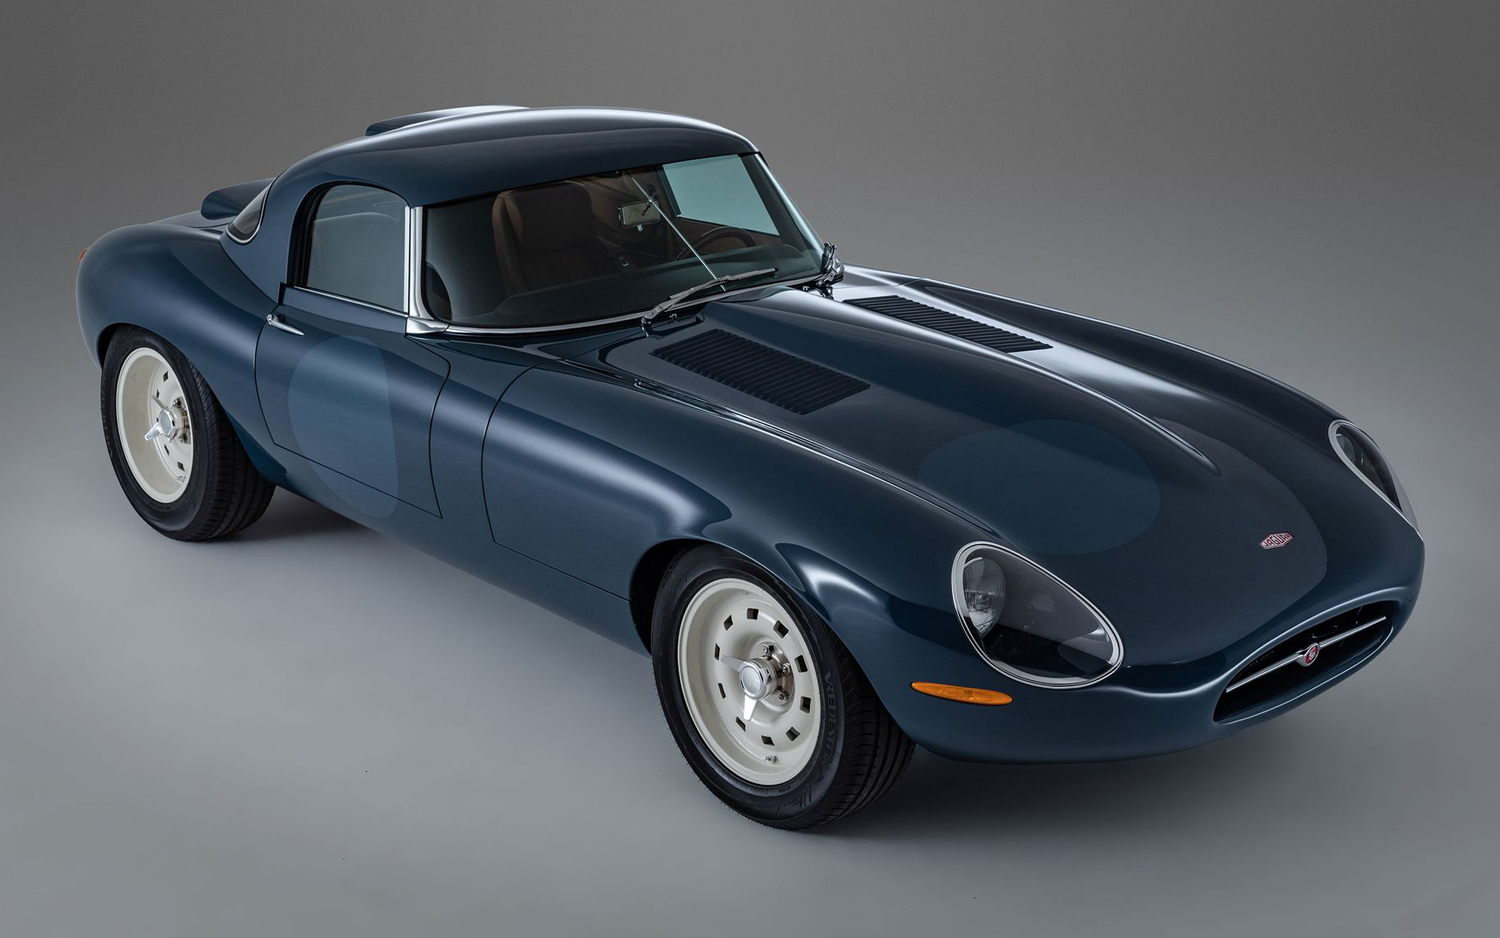 Eagle Lightweight GT E-Type